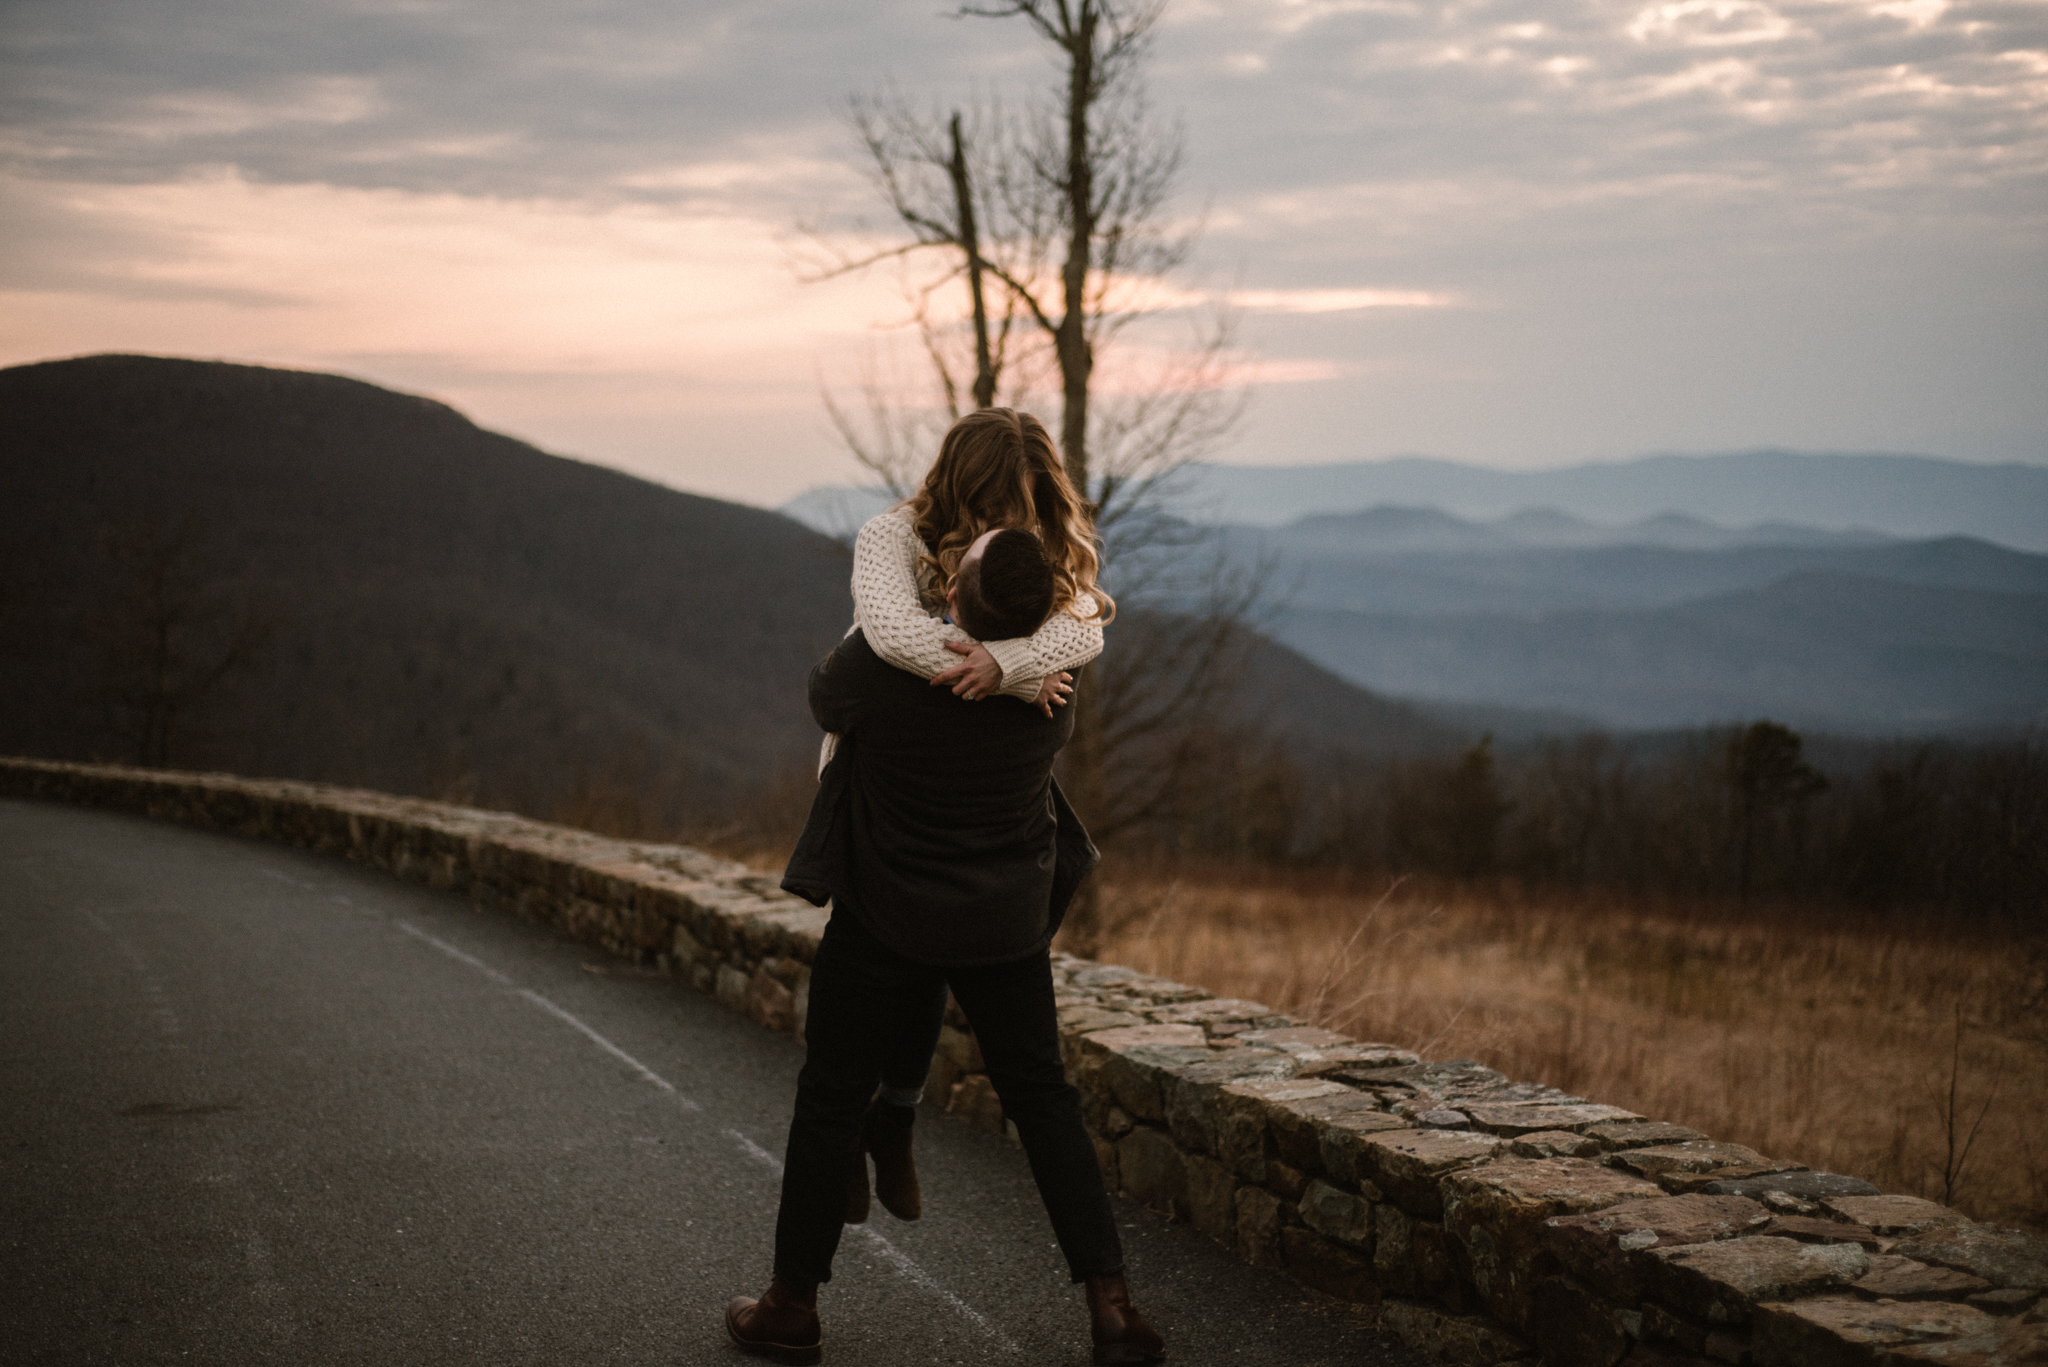 Nicole and Victor - Shenandoah National Park Engagement Photography - Blue Ridge Mountains Adventure Photography - White Sails Creative Photography_32.jpg